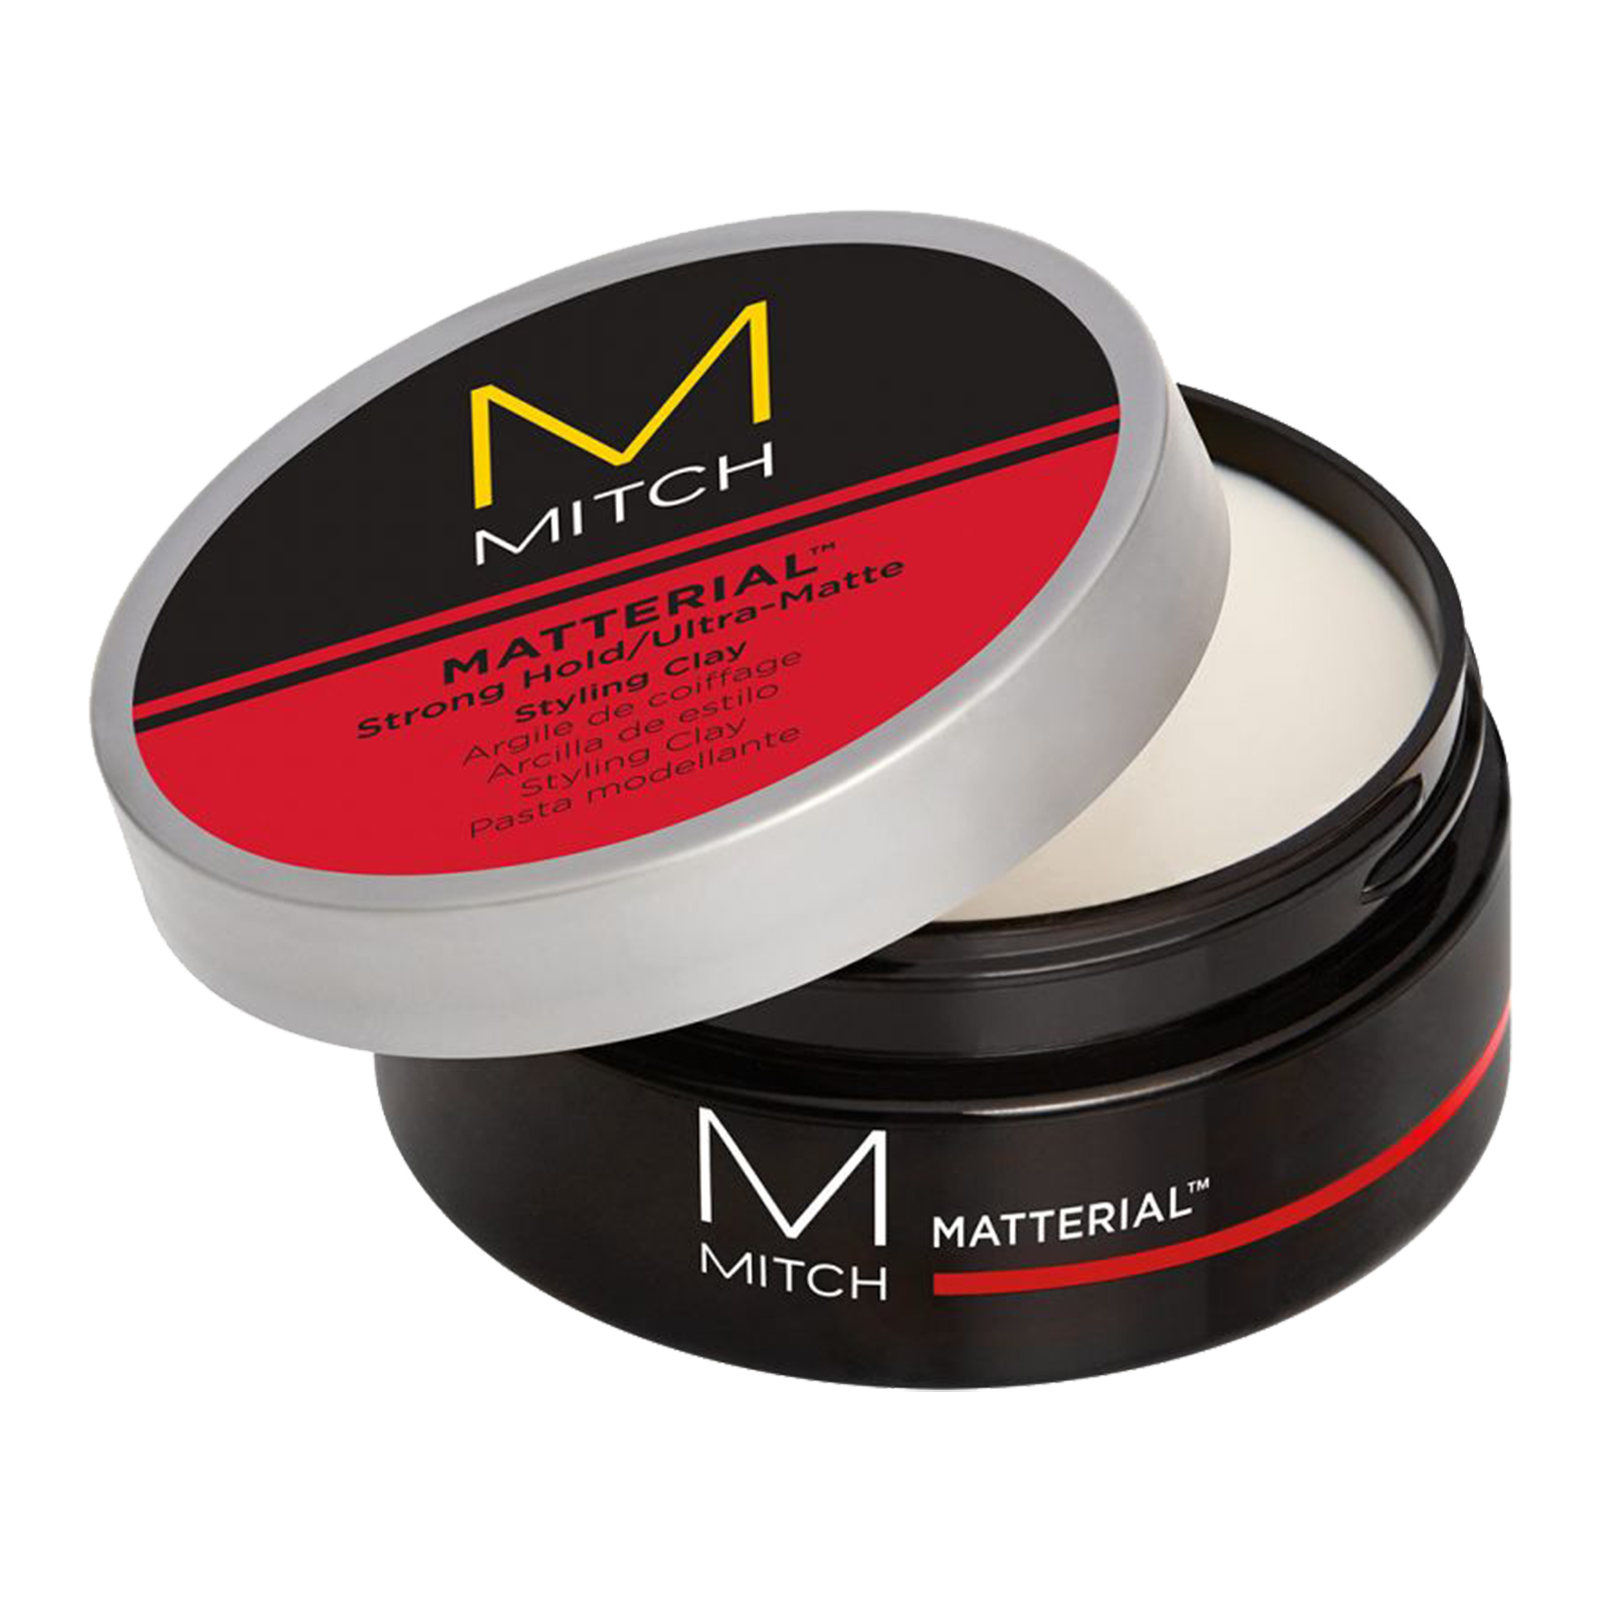 Mitch Matterial >> Matterial Strong Hold - Ultra Matte Styling Clay - John Paul Mitchell Systems | CosmoProf